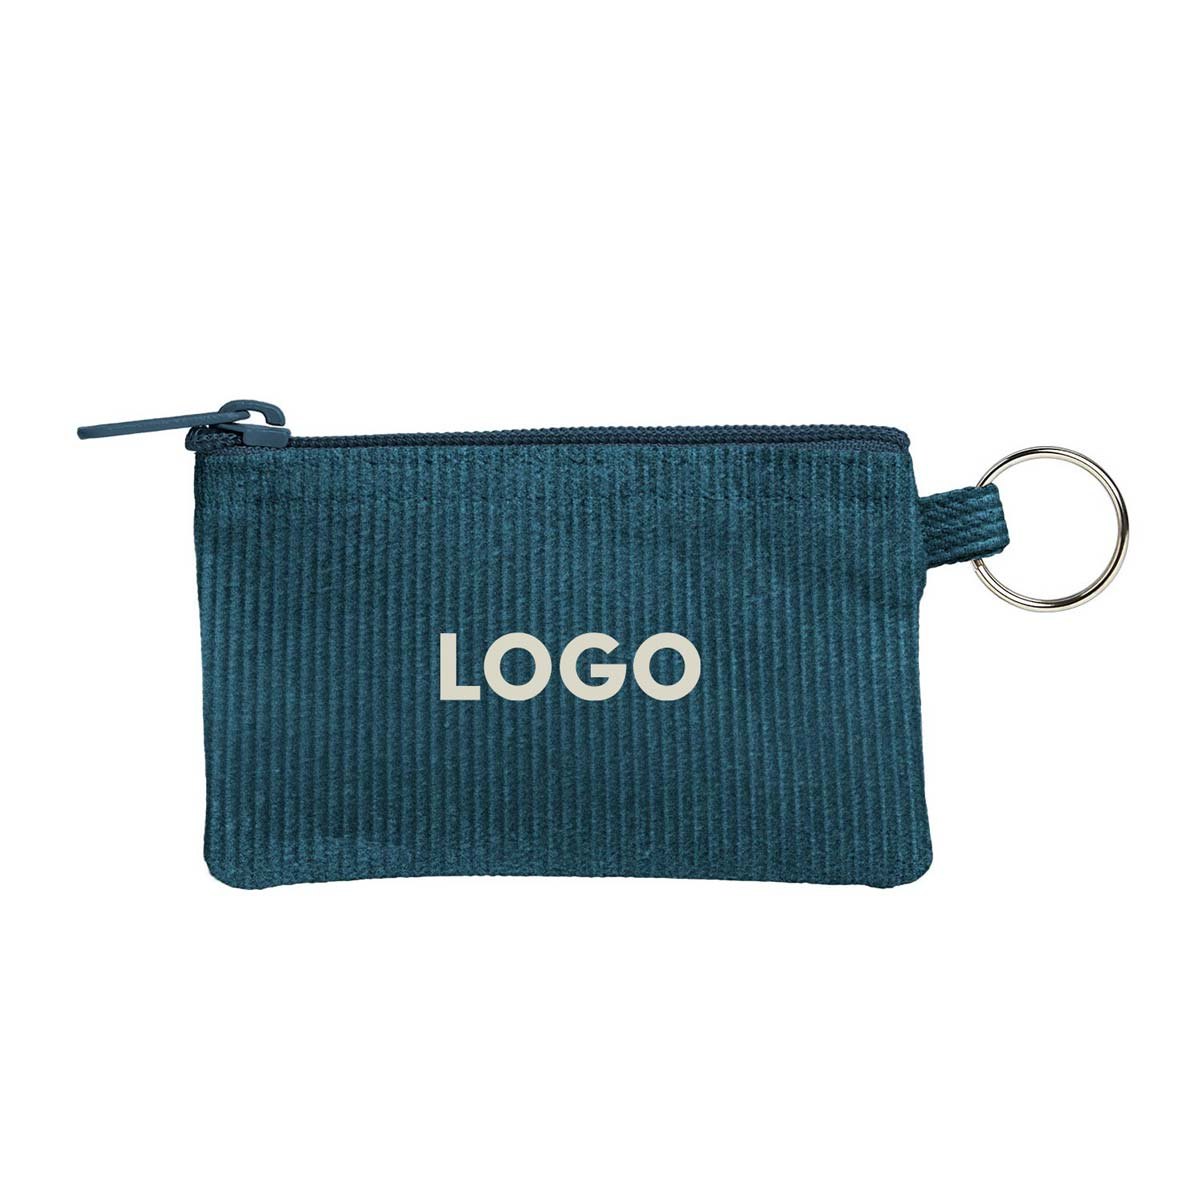 313949 penny corduroy pouch one color one location imprint